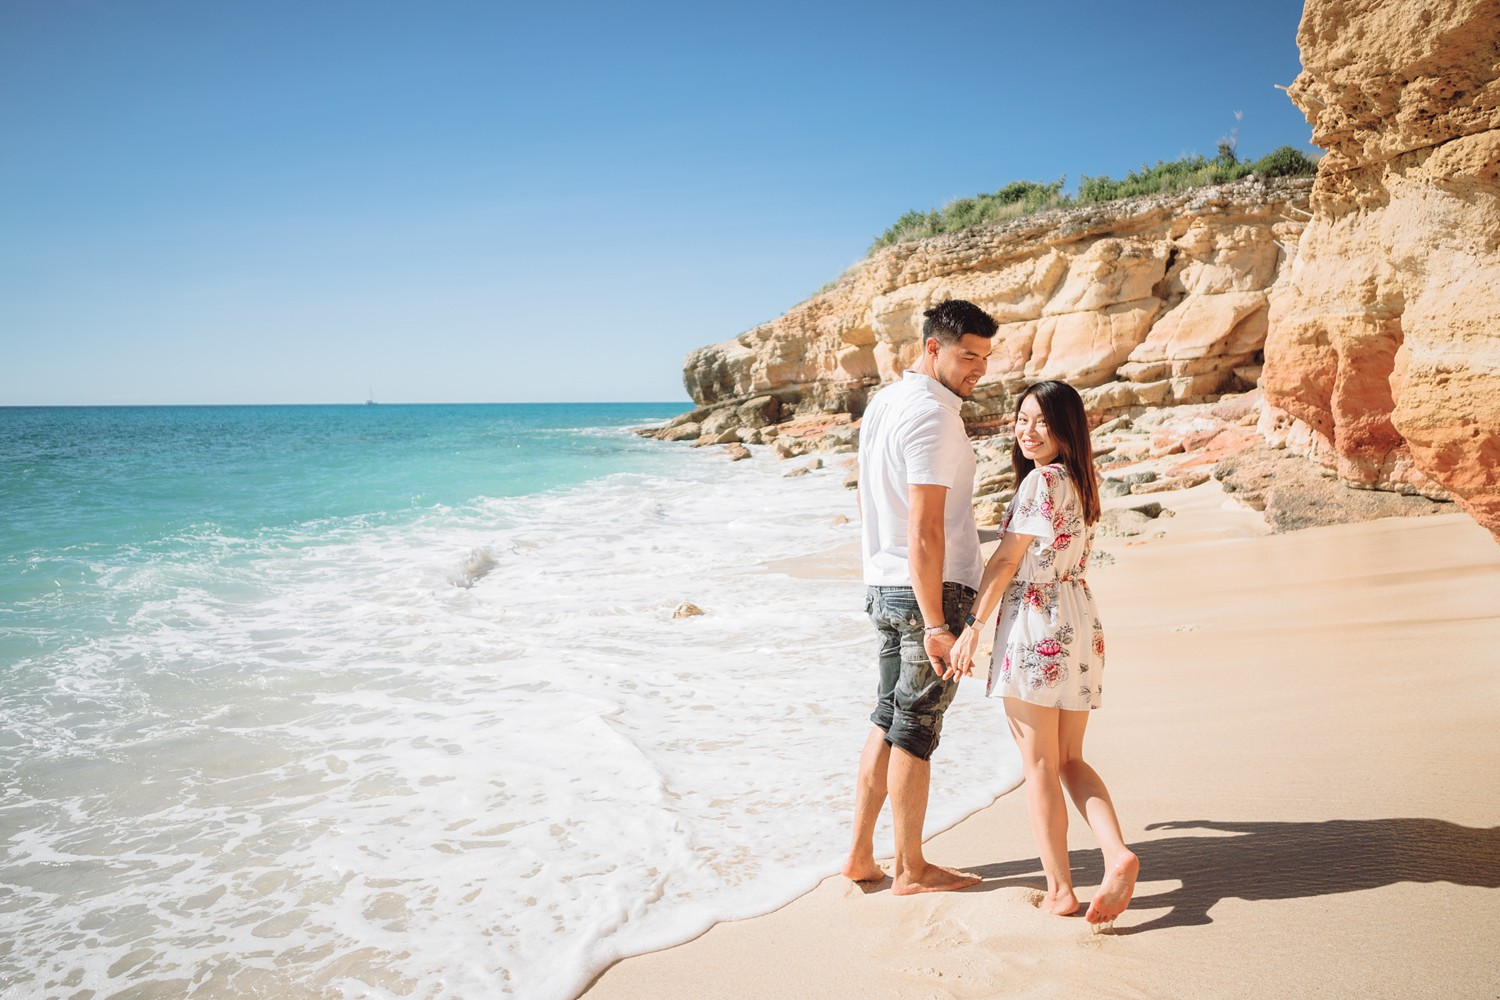 Cupecoy_Beach_Royal_Caribbean_Cruise_to_St.Maarten_Island_Harmony_of_The_Seas_Destination_Engagement_Photos